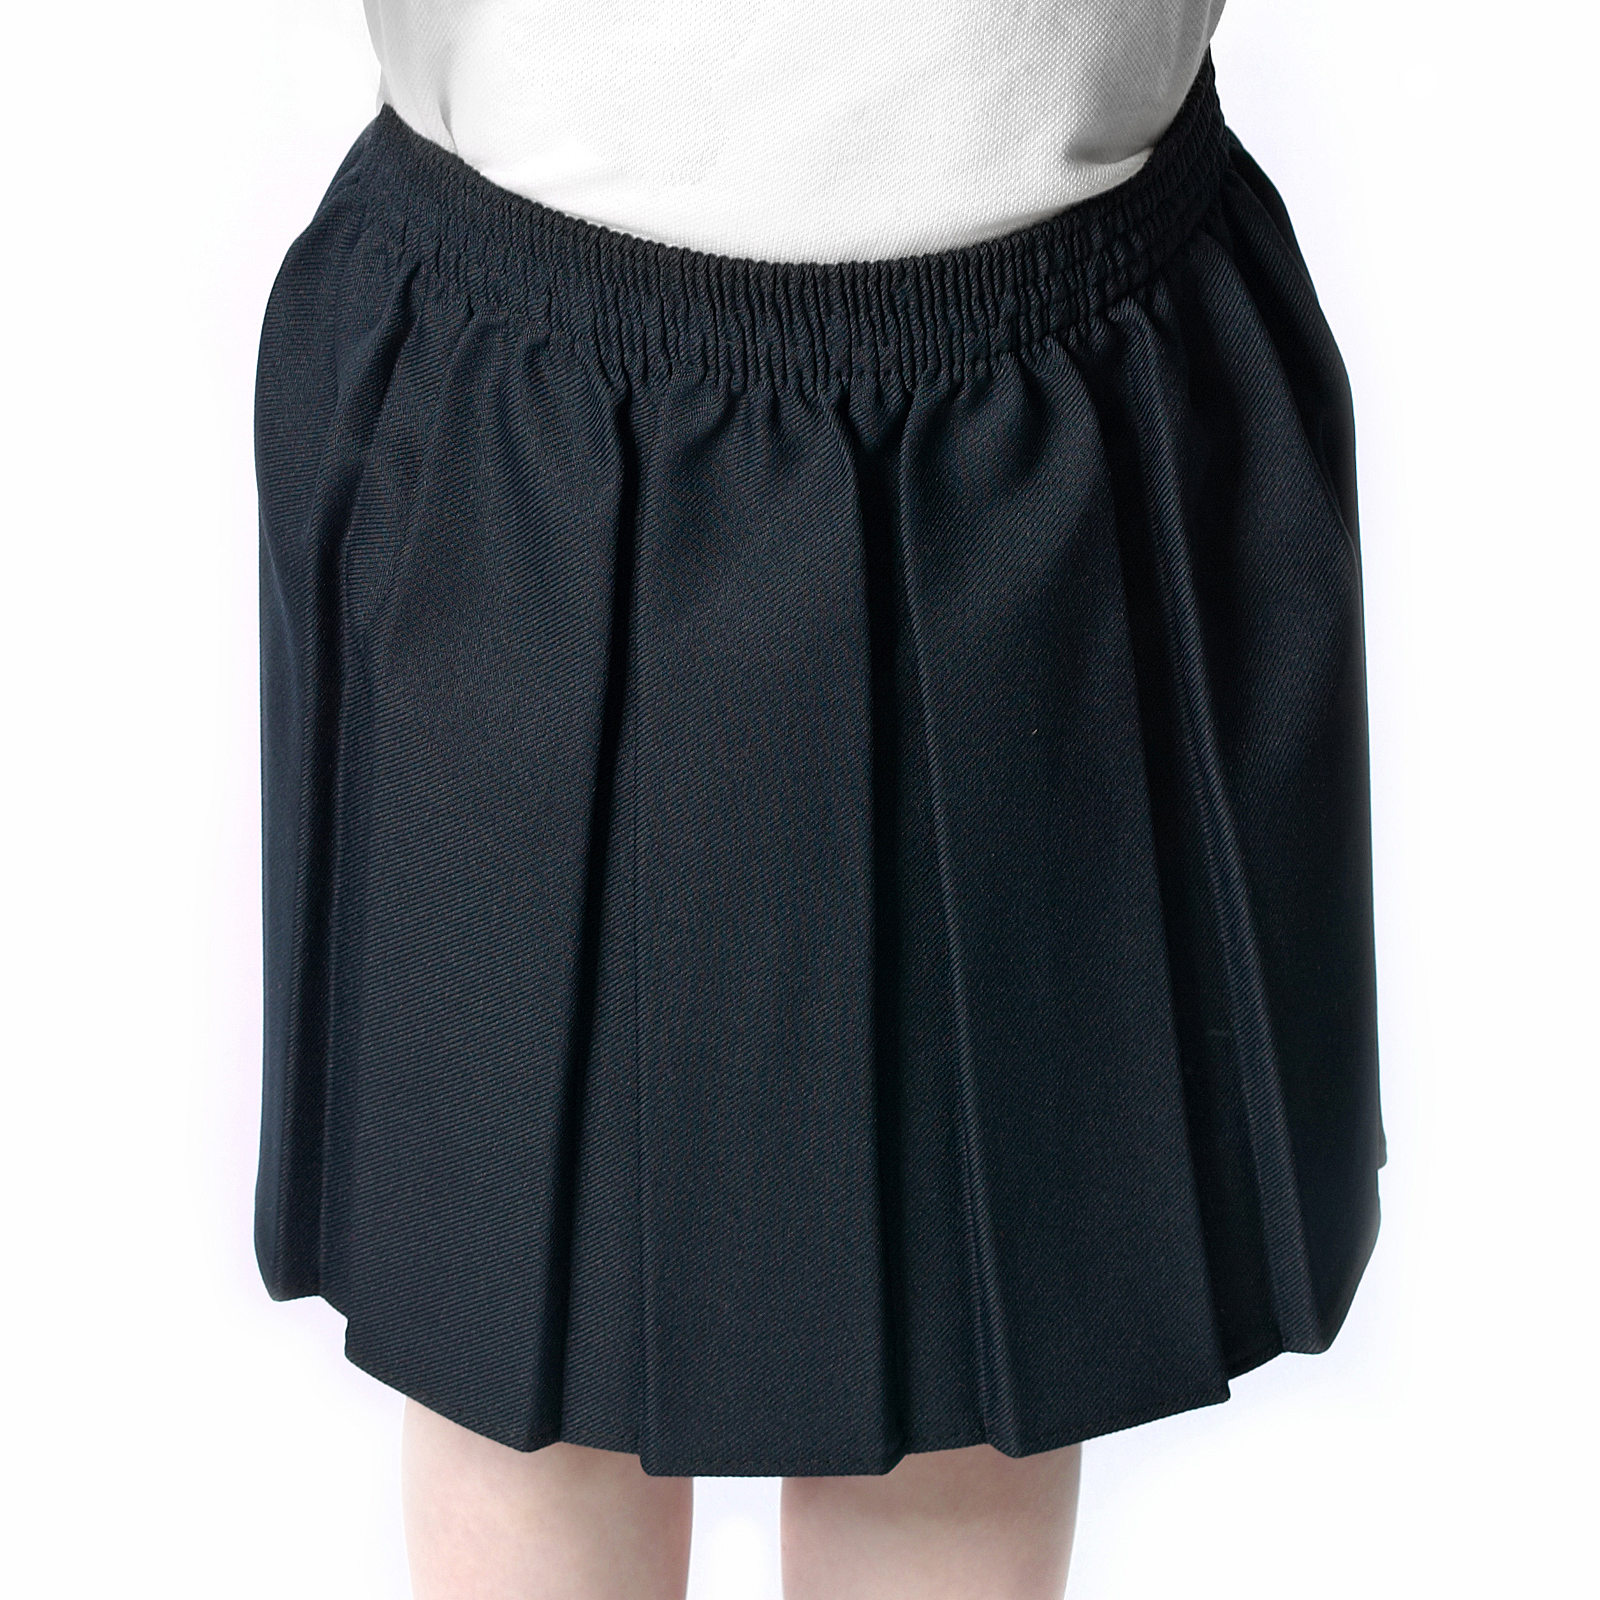 Schoolgirl Skirts, Plaid Skirts and Schoolgirl Costumes sportworlds.gq designs the sexiest plaid skirts, school girl costumes and other pleated and mini skirts in grown-up sizes! We specialize in plaid skirts in Junior and Plus sizes.